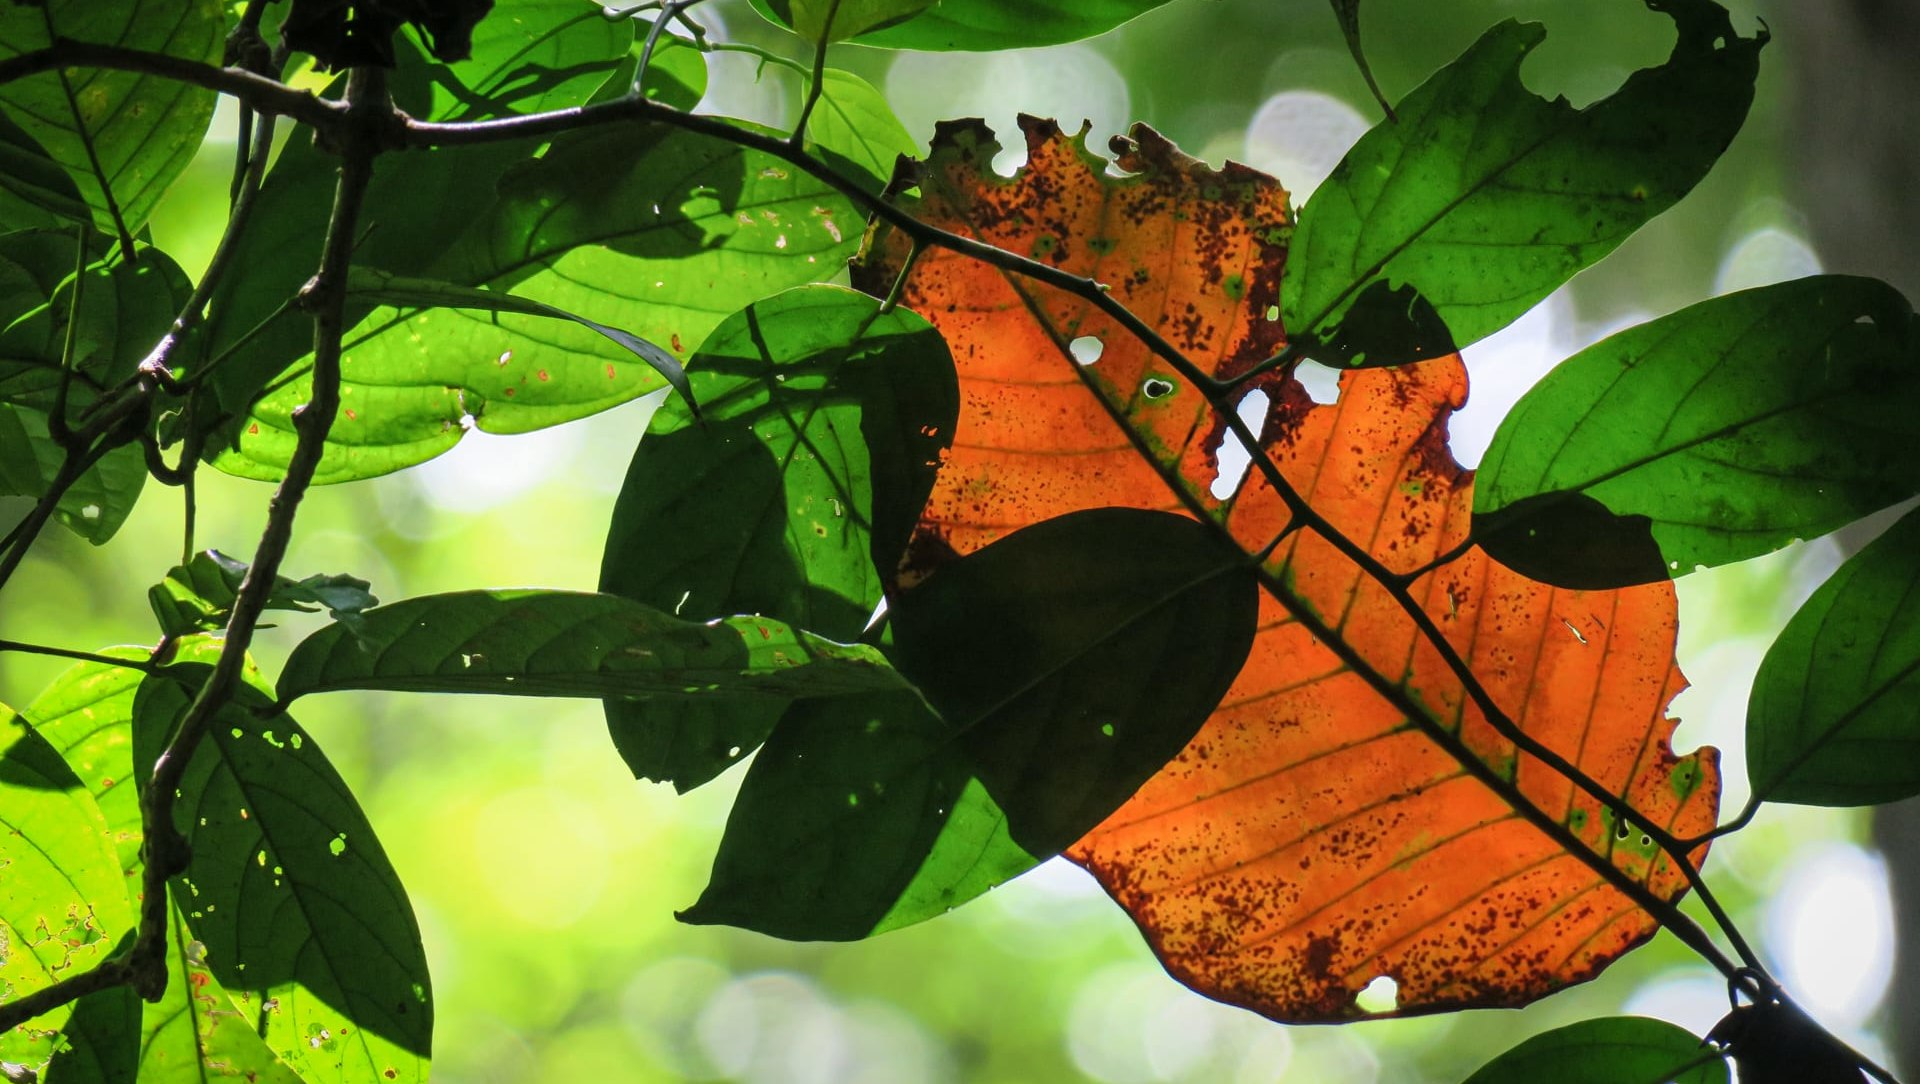 The Art of Dying: Senescence in Leaves